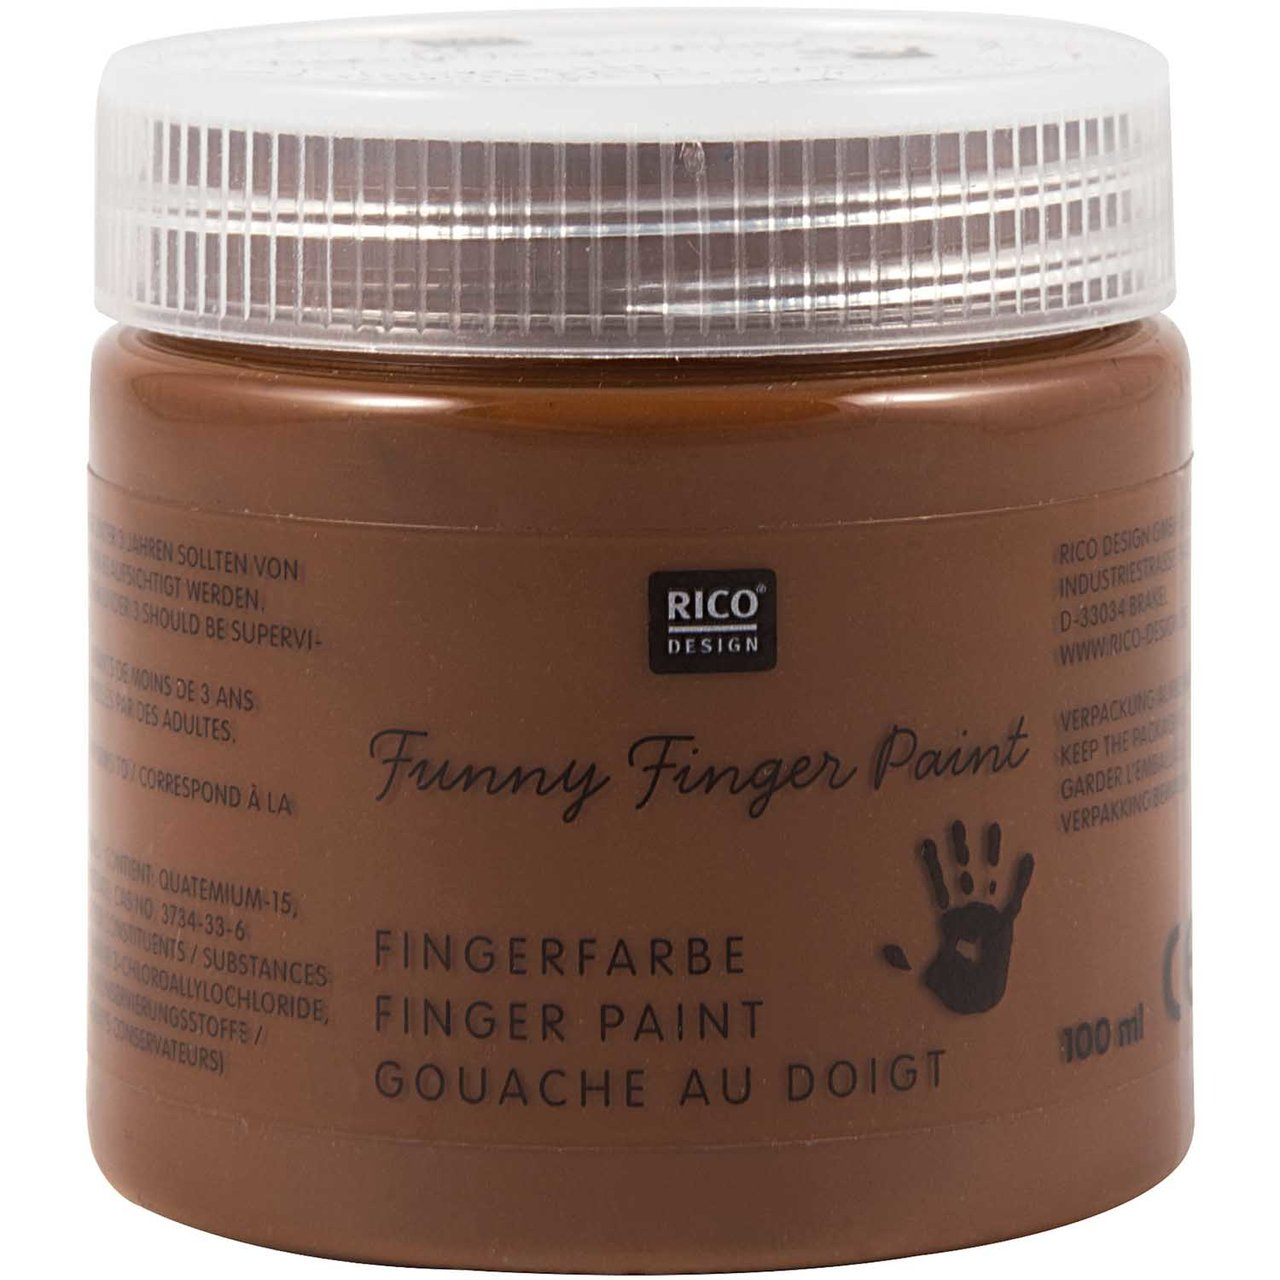 Rico Design Fingerfarbe 100ml braun von Rico Design